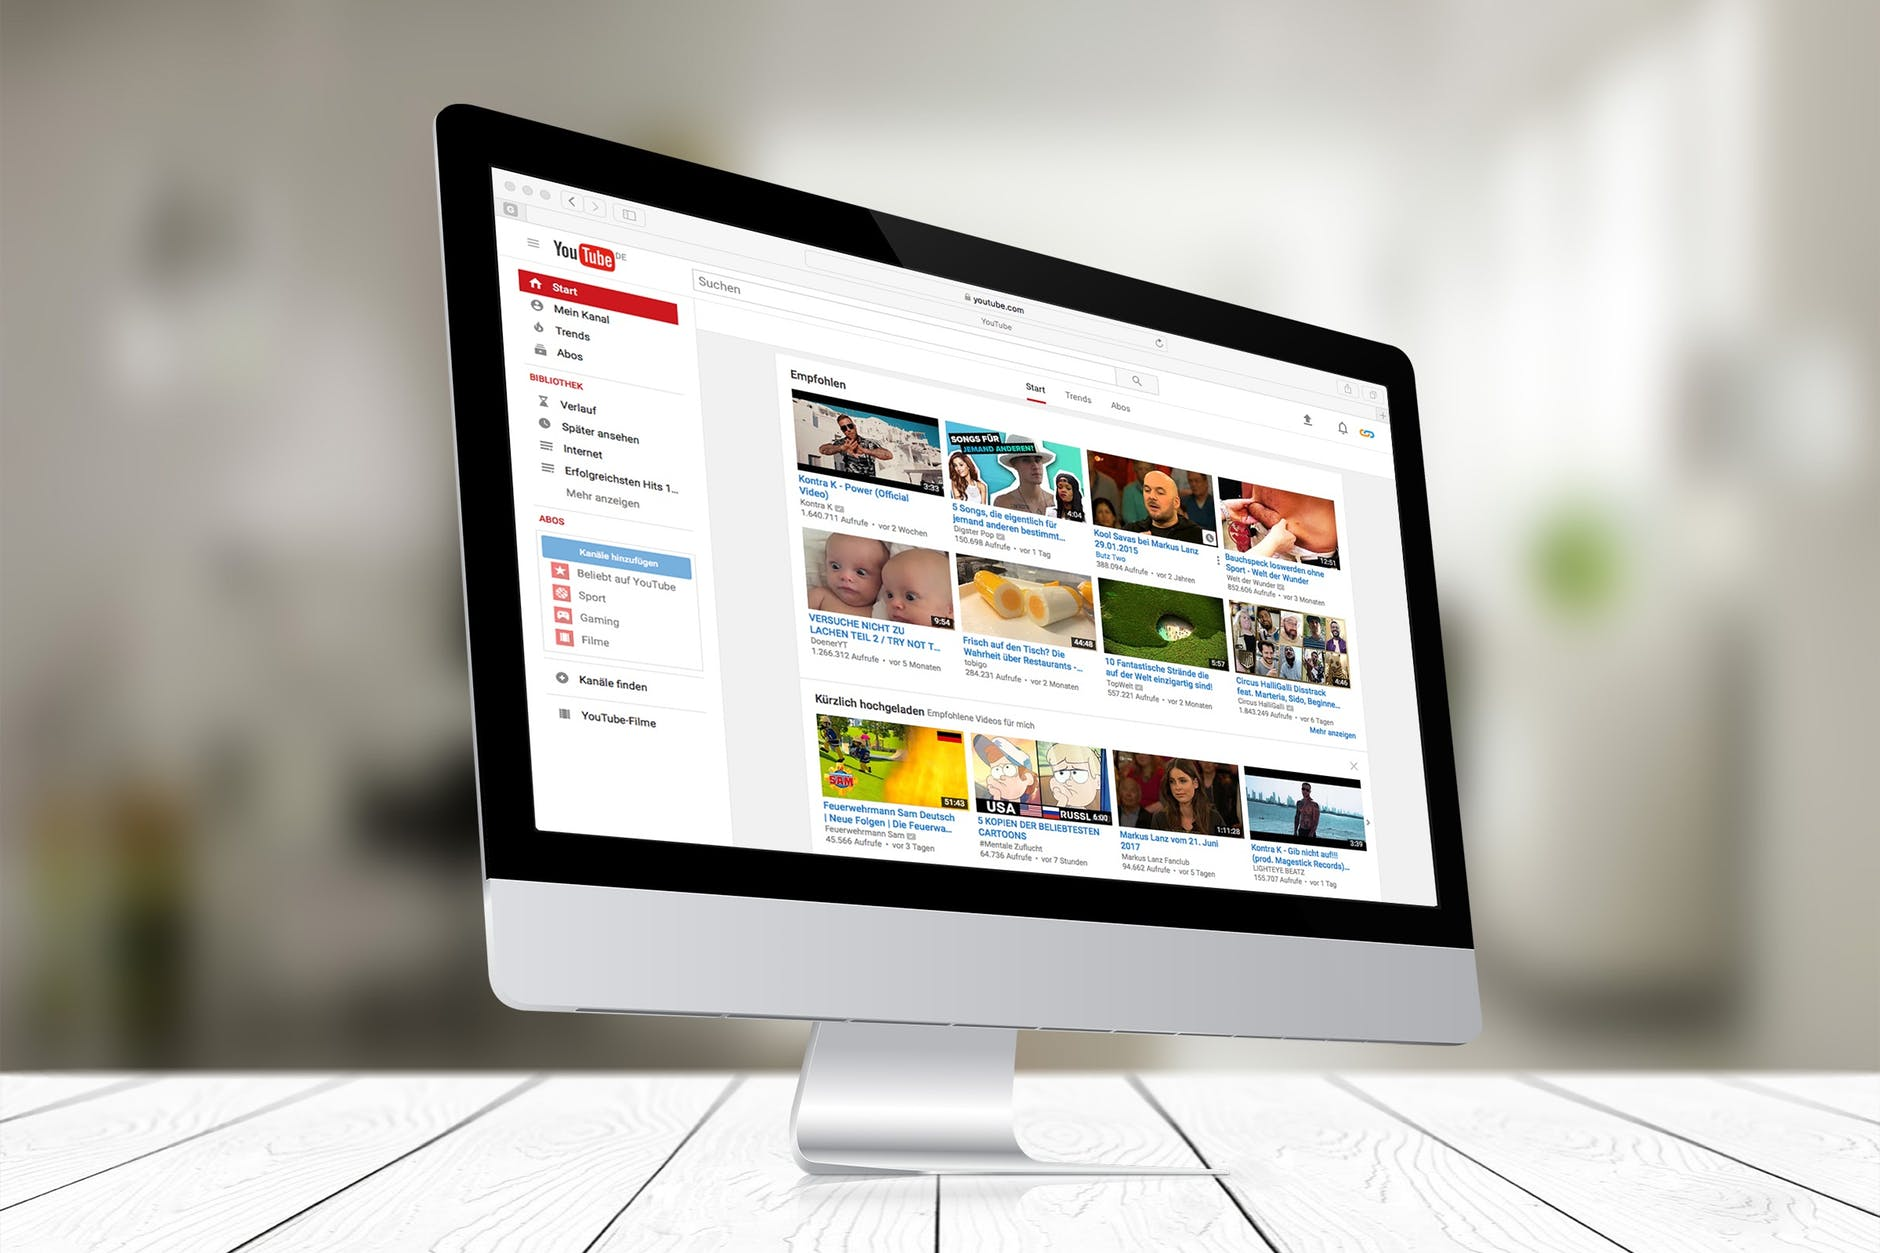 youtube site open in a silver imac